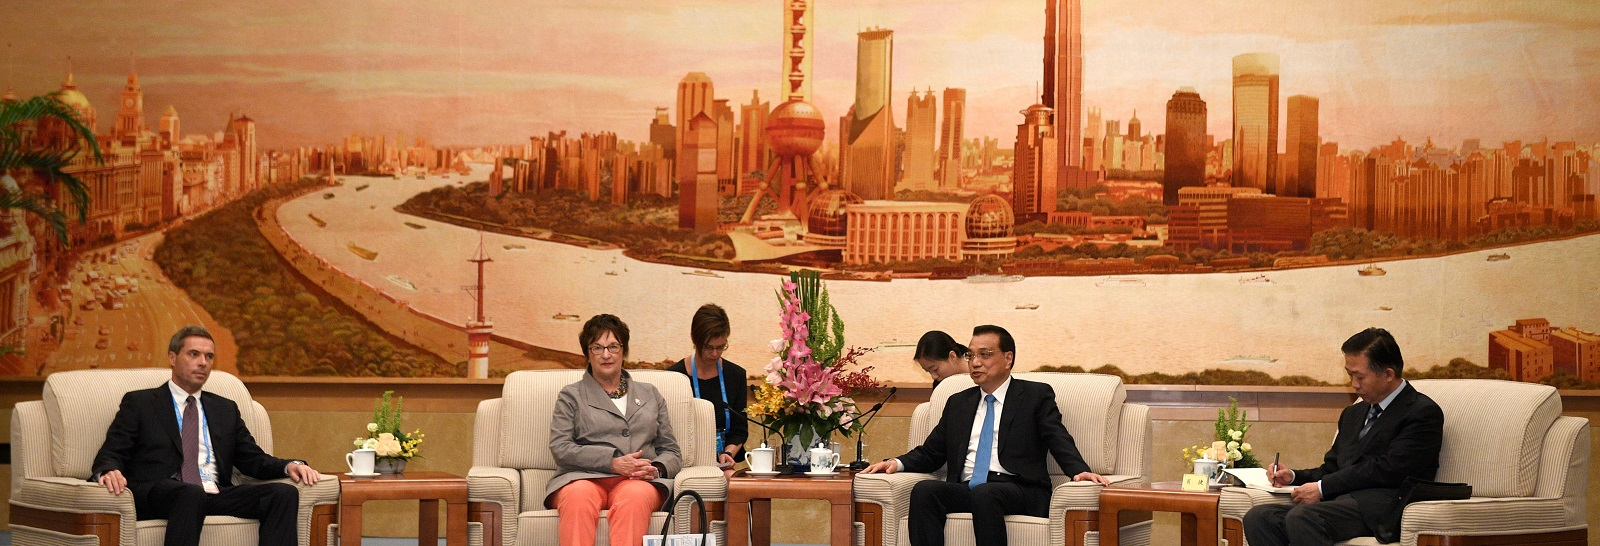 German Minister for Economic Affairs and Energy, Brigitte Zypries and Chinese Premier Li Keqiang at the BRI Summit in Beijing, 15 May.(Photo:Parker Song/Getty Images)